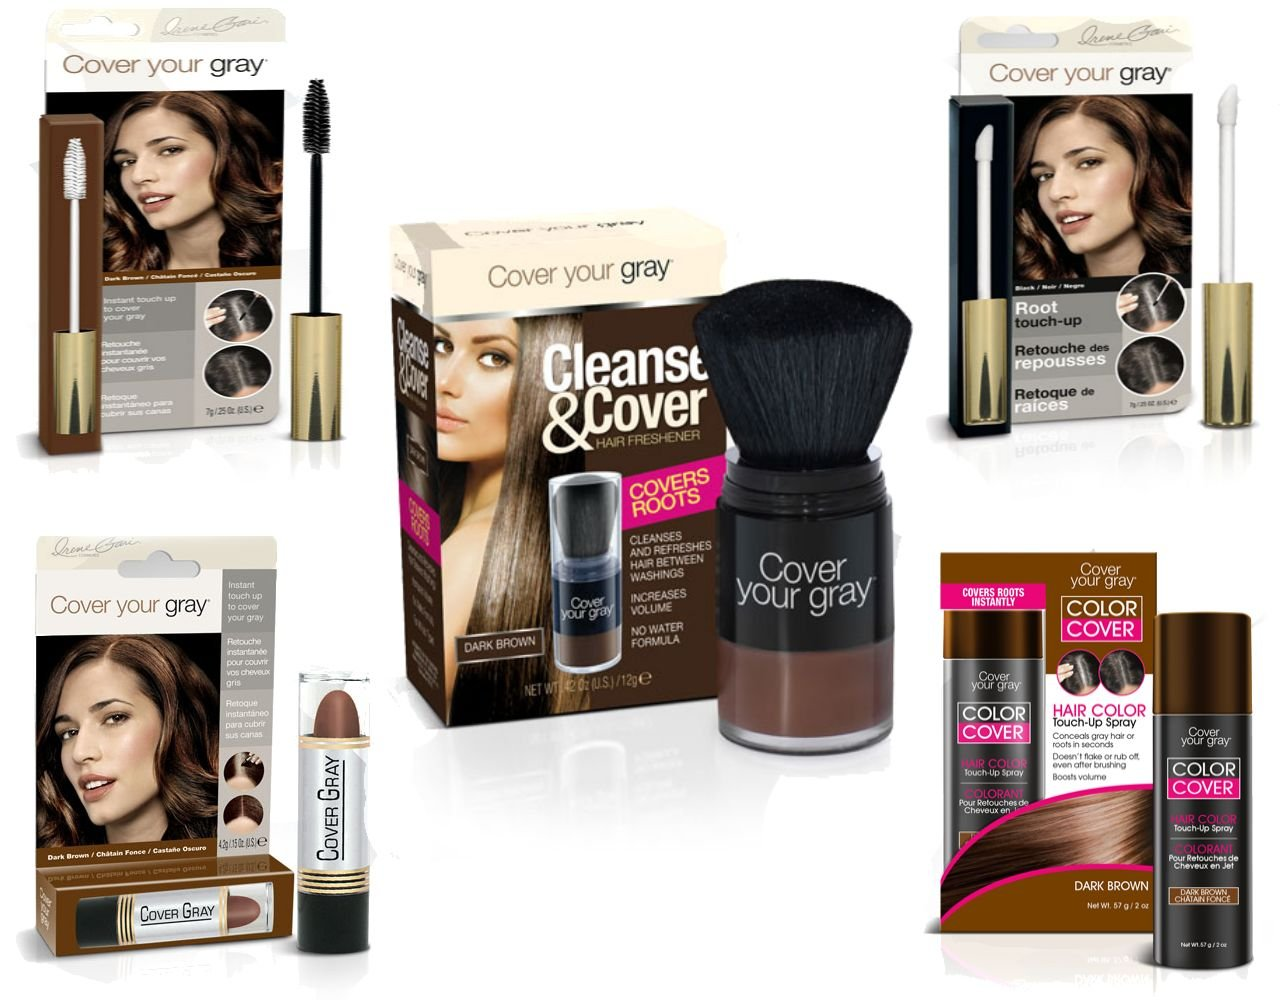 Cover Your Roots - Cover, Cleanse and Refresh: 5 Piece Gray Coverage Set, Dark Brown